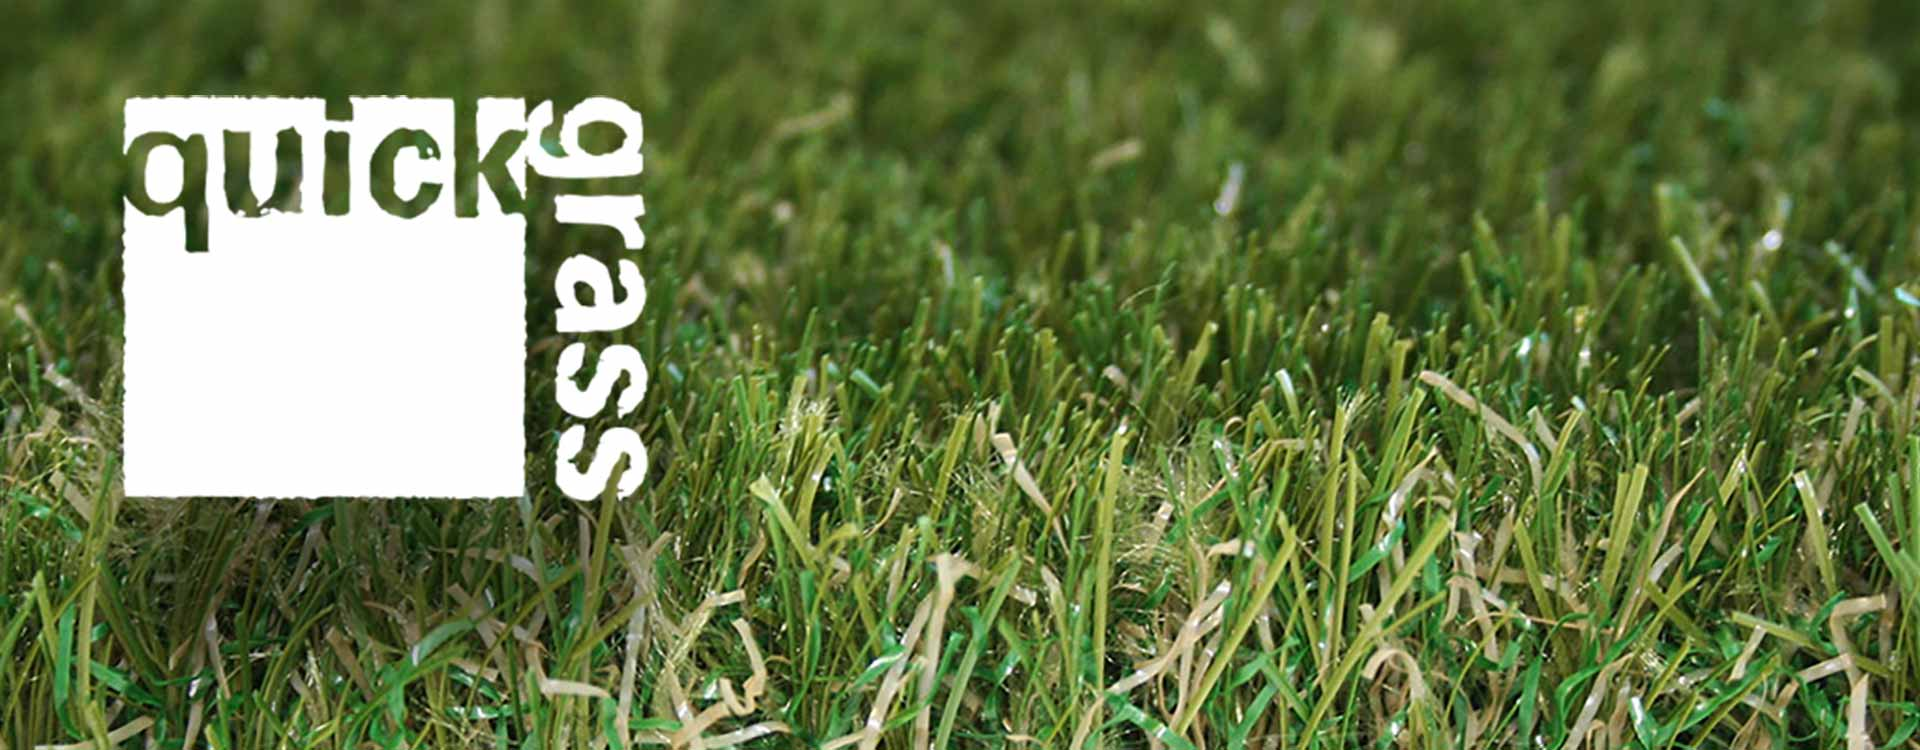 about-quickgrass-artificial-grass-landscapia